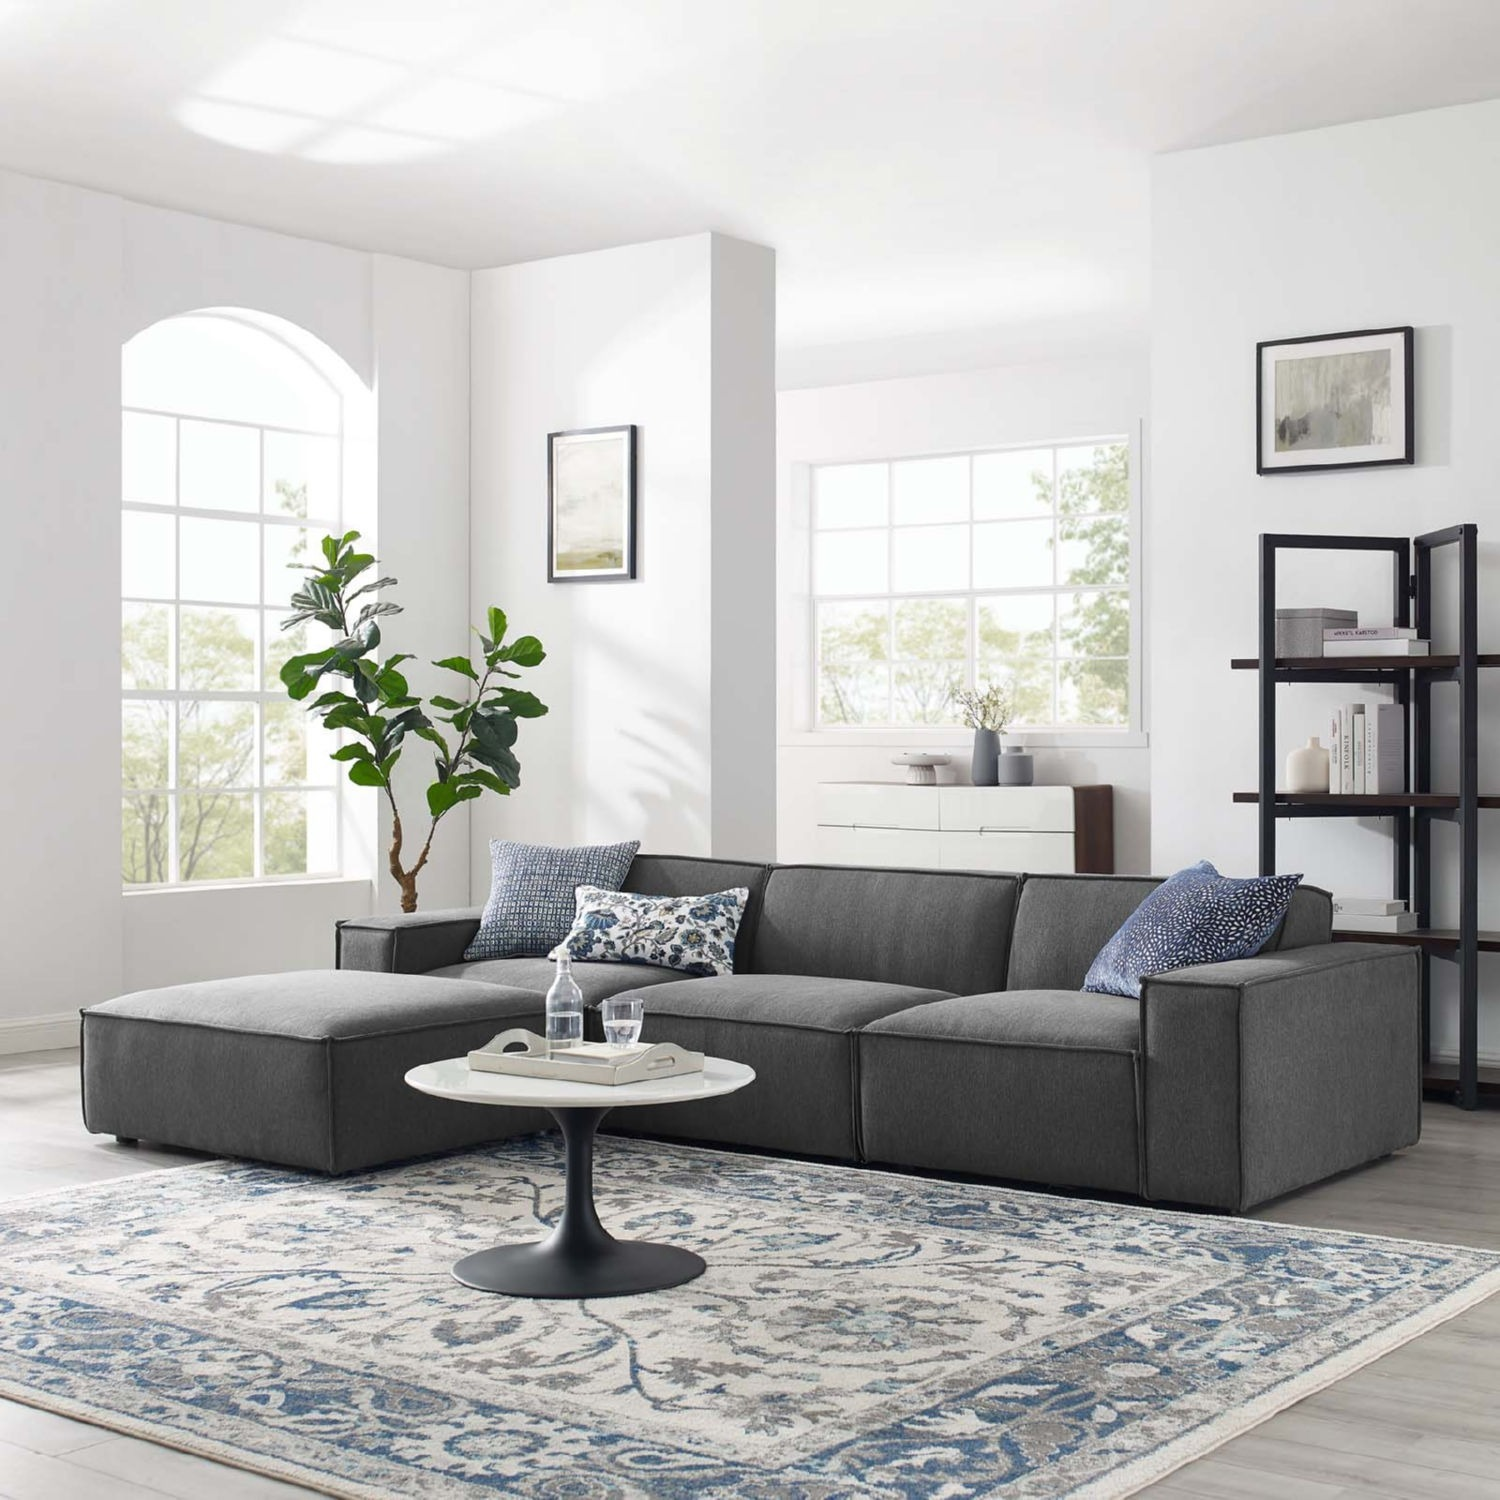 4-Piece Sectional Sofa In Charcoal Fabric - image-10